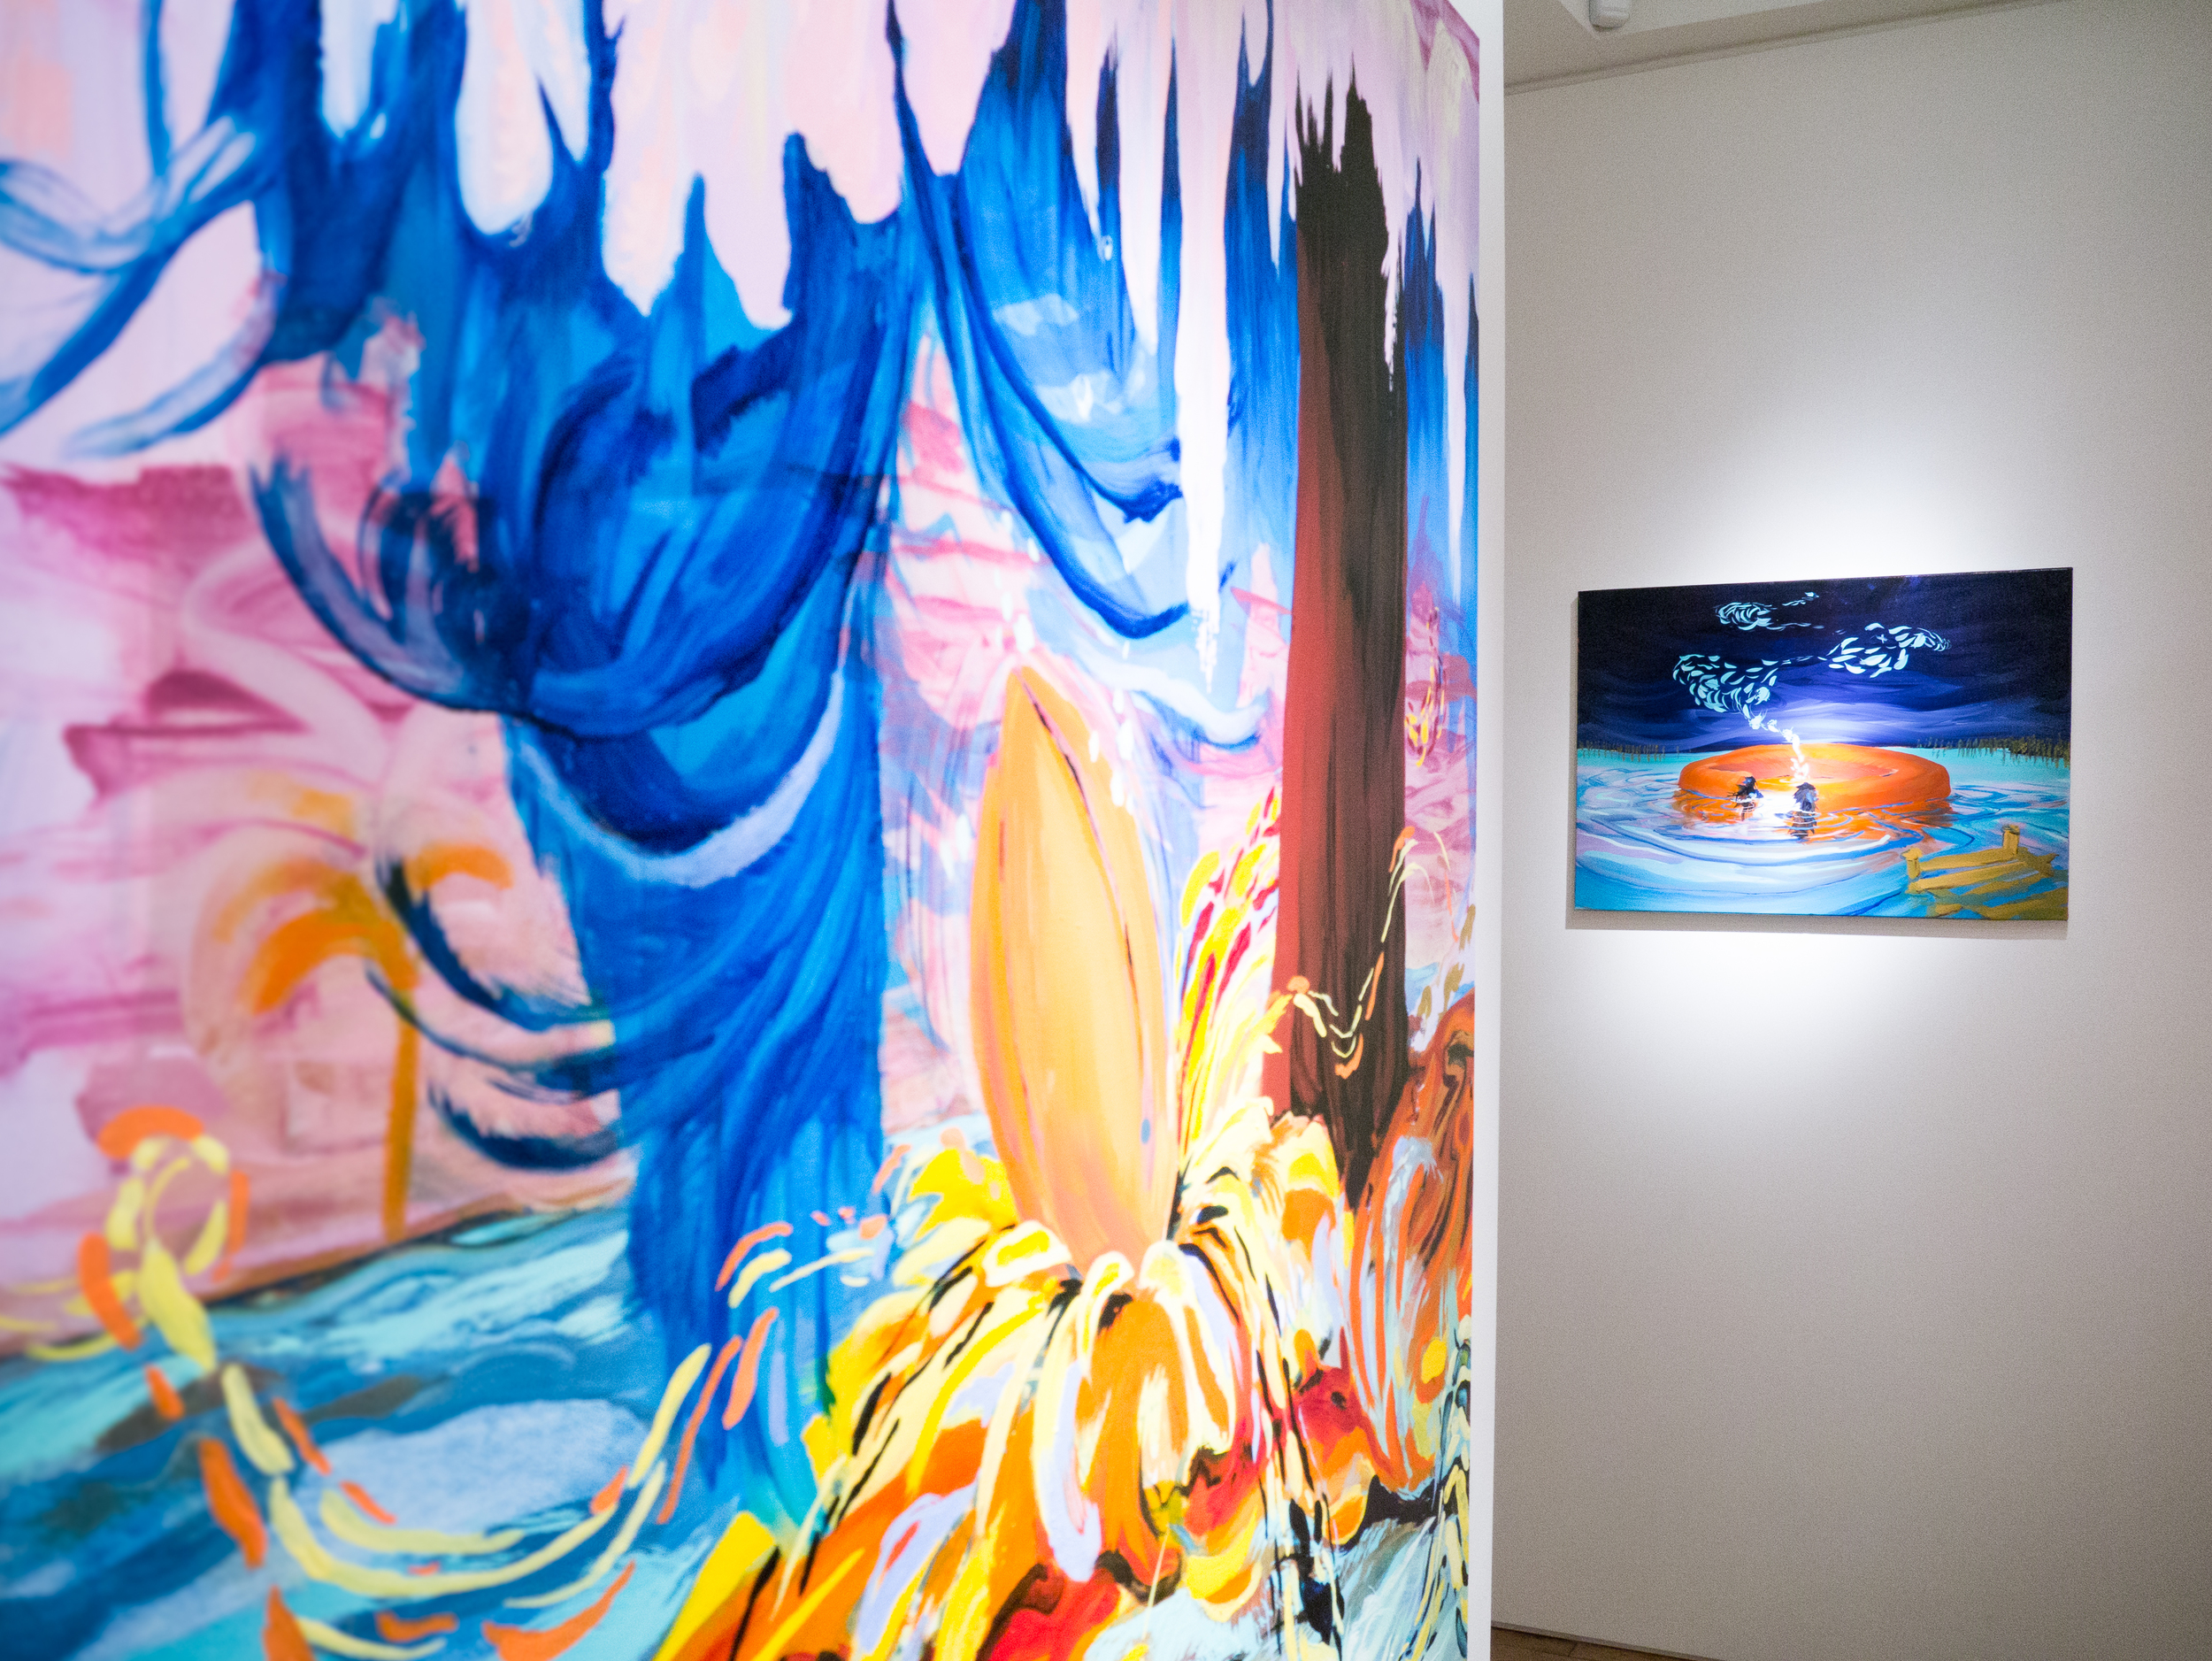 Michael O'Reilly | Saltwater solo exhibition at CABIN gallery curated by Joe Madeira